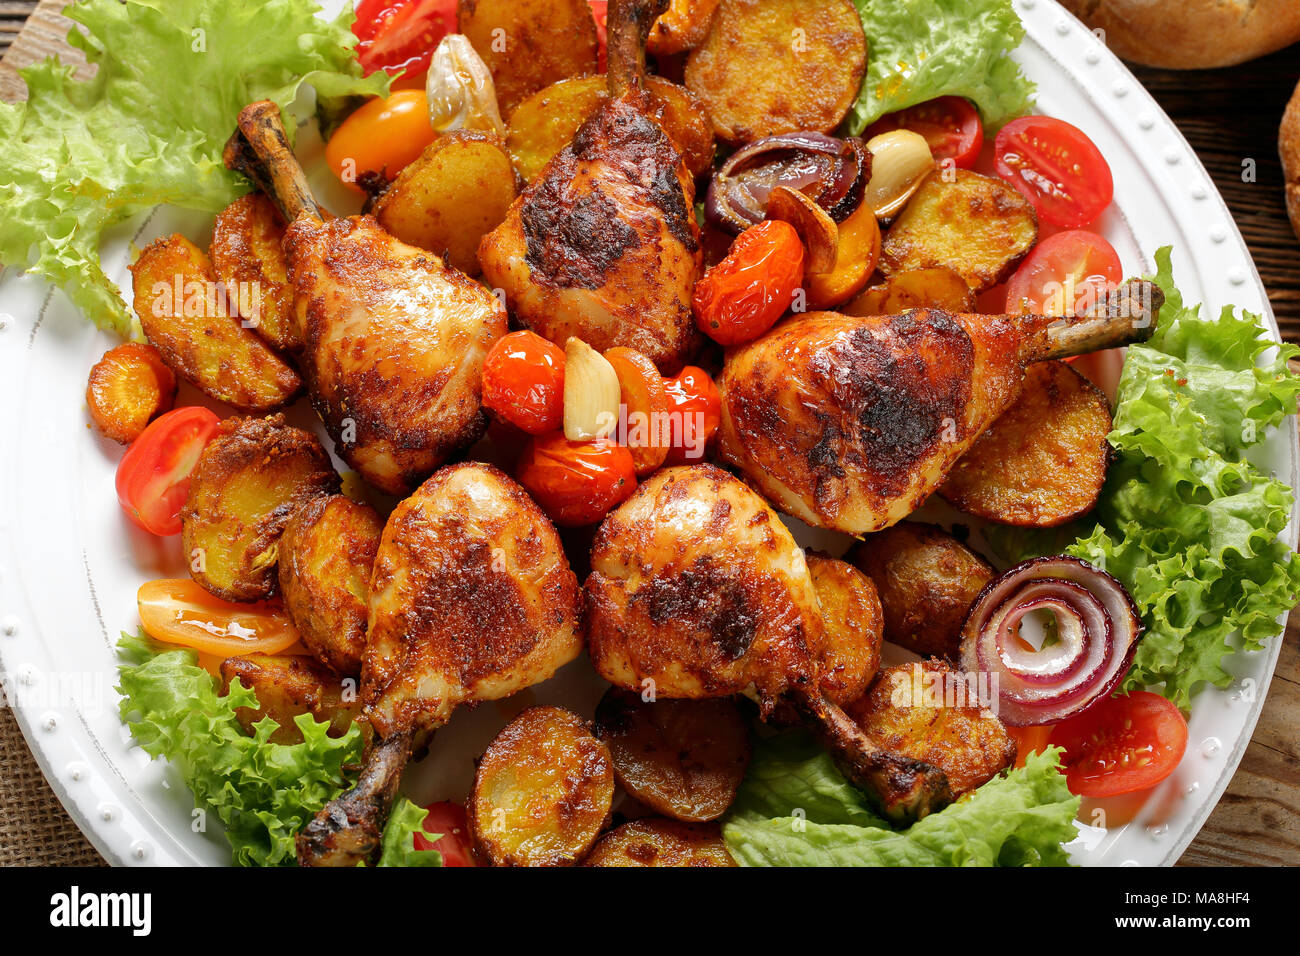 Roasted Chicken Legs With Baked Potato On The Plate Stock Photo